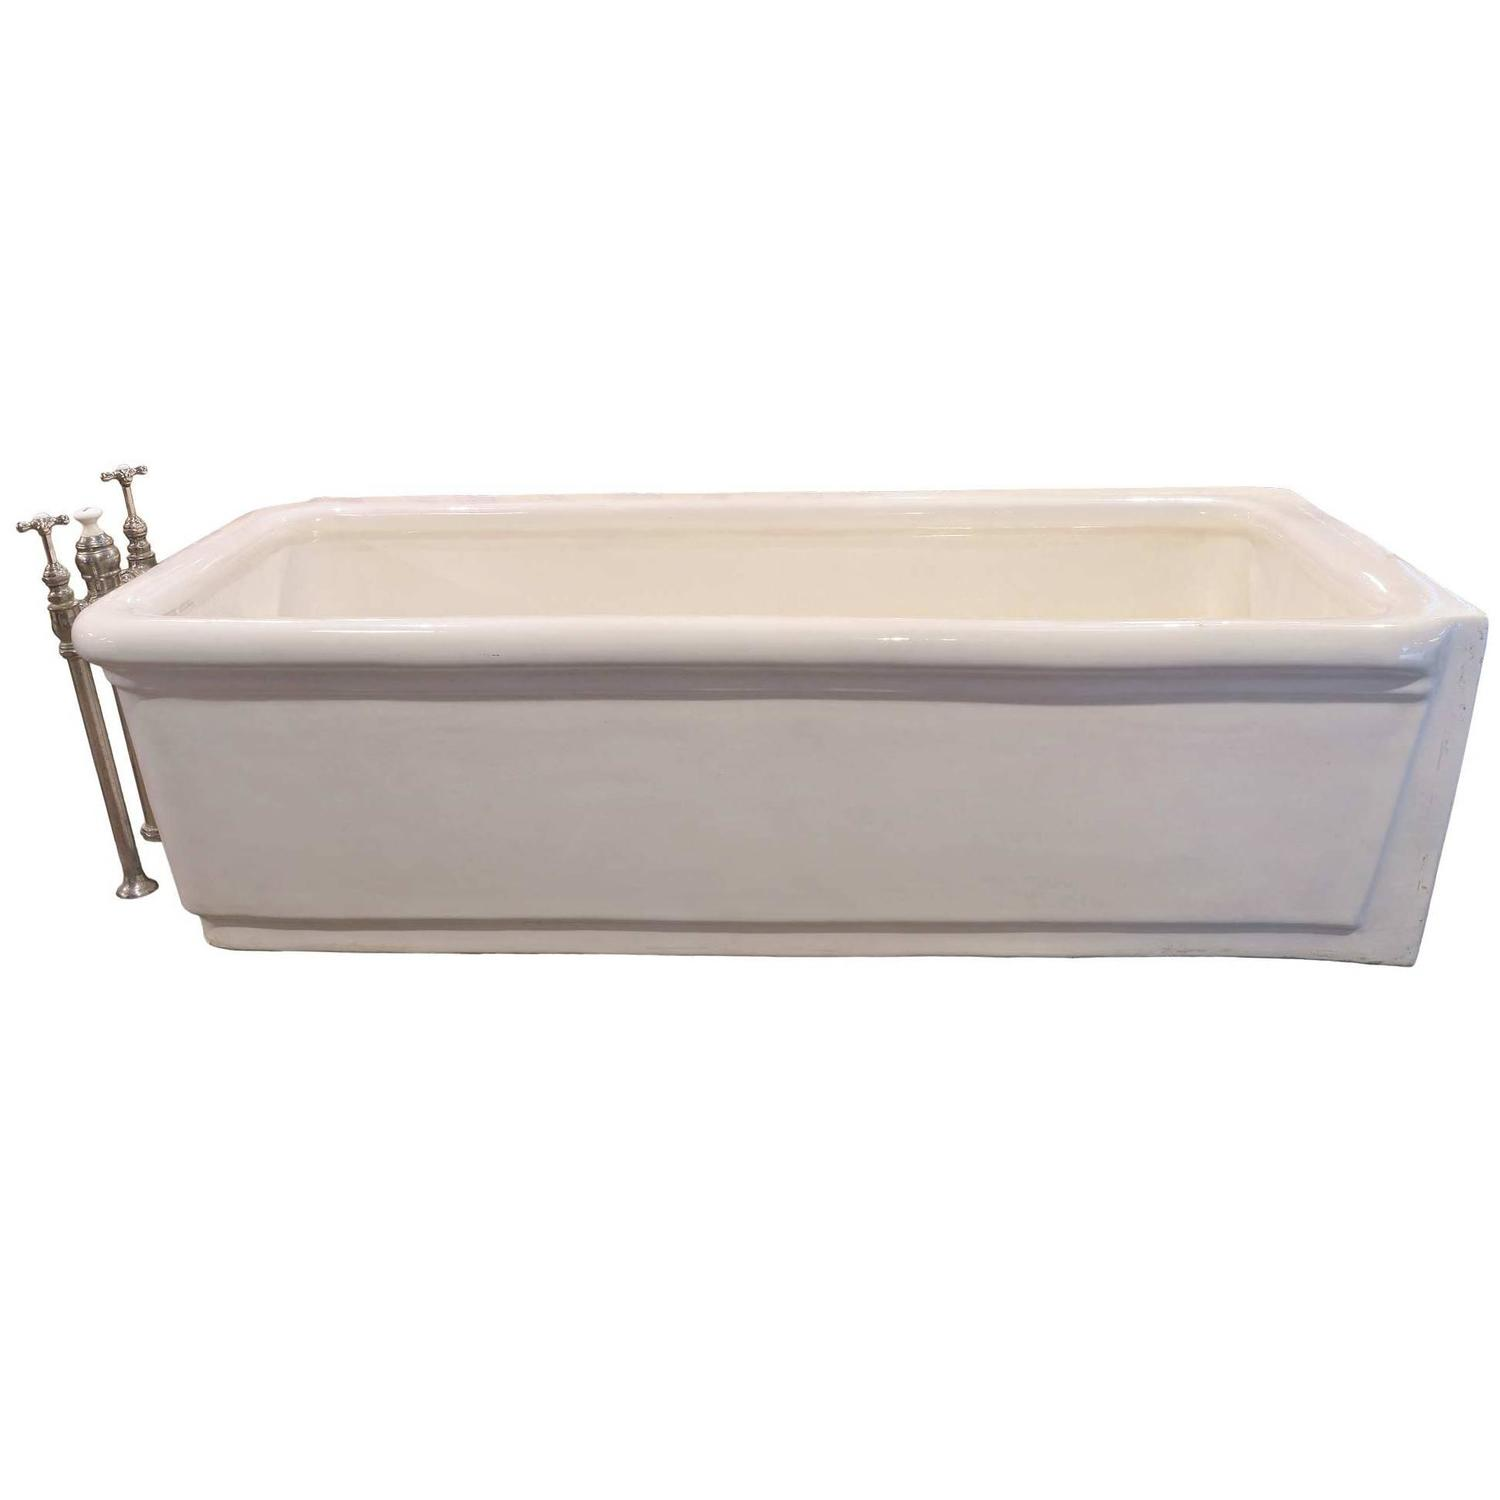 Pristine porcelain bathtub with original nickel plated for Porcelain bathtubs for sale